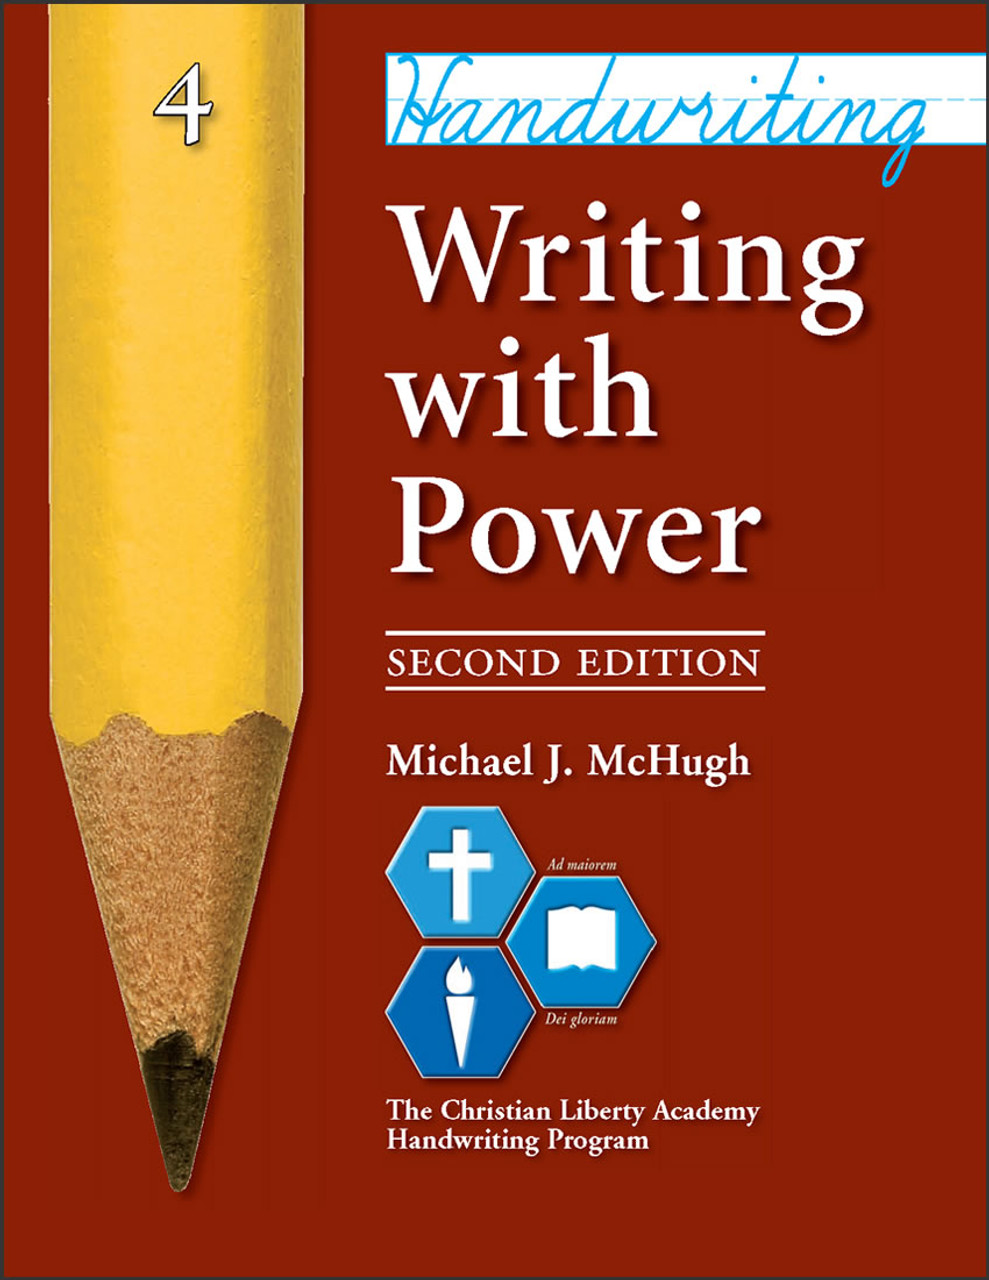 Writing with Power, 2nd edition